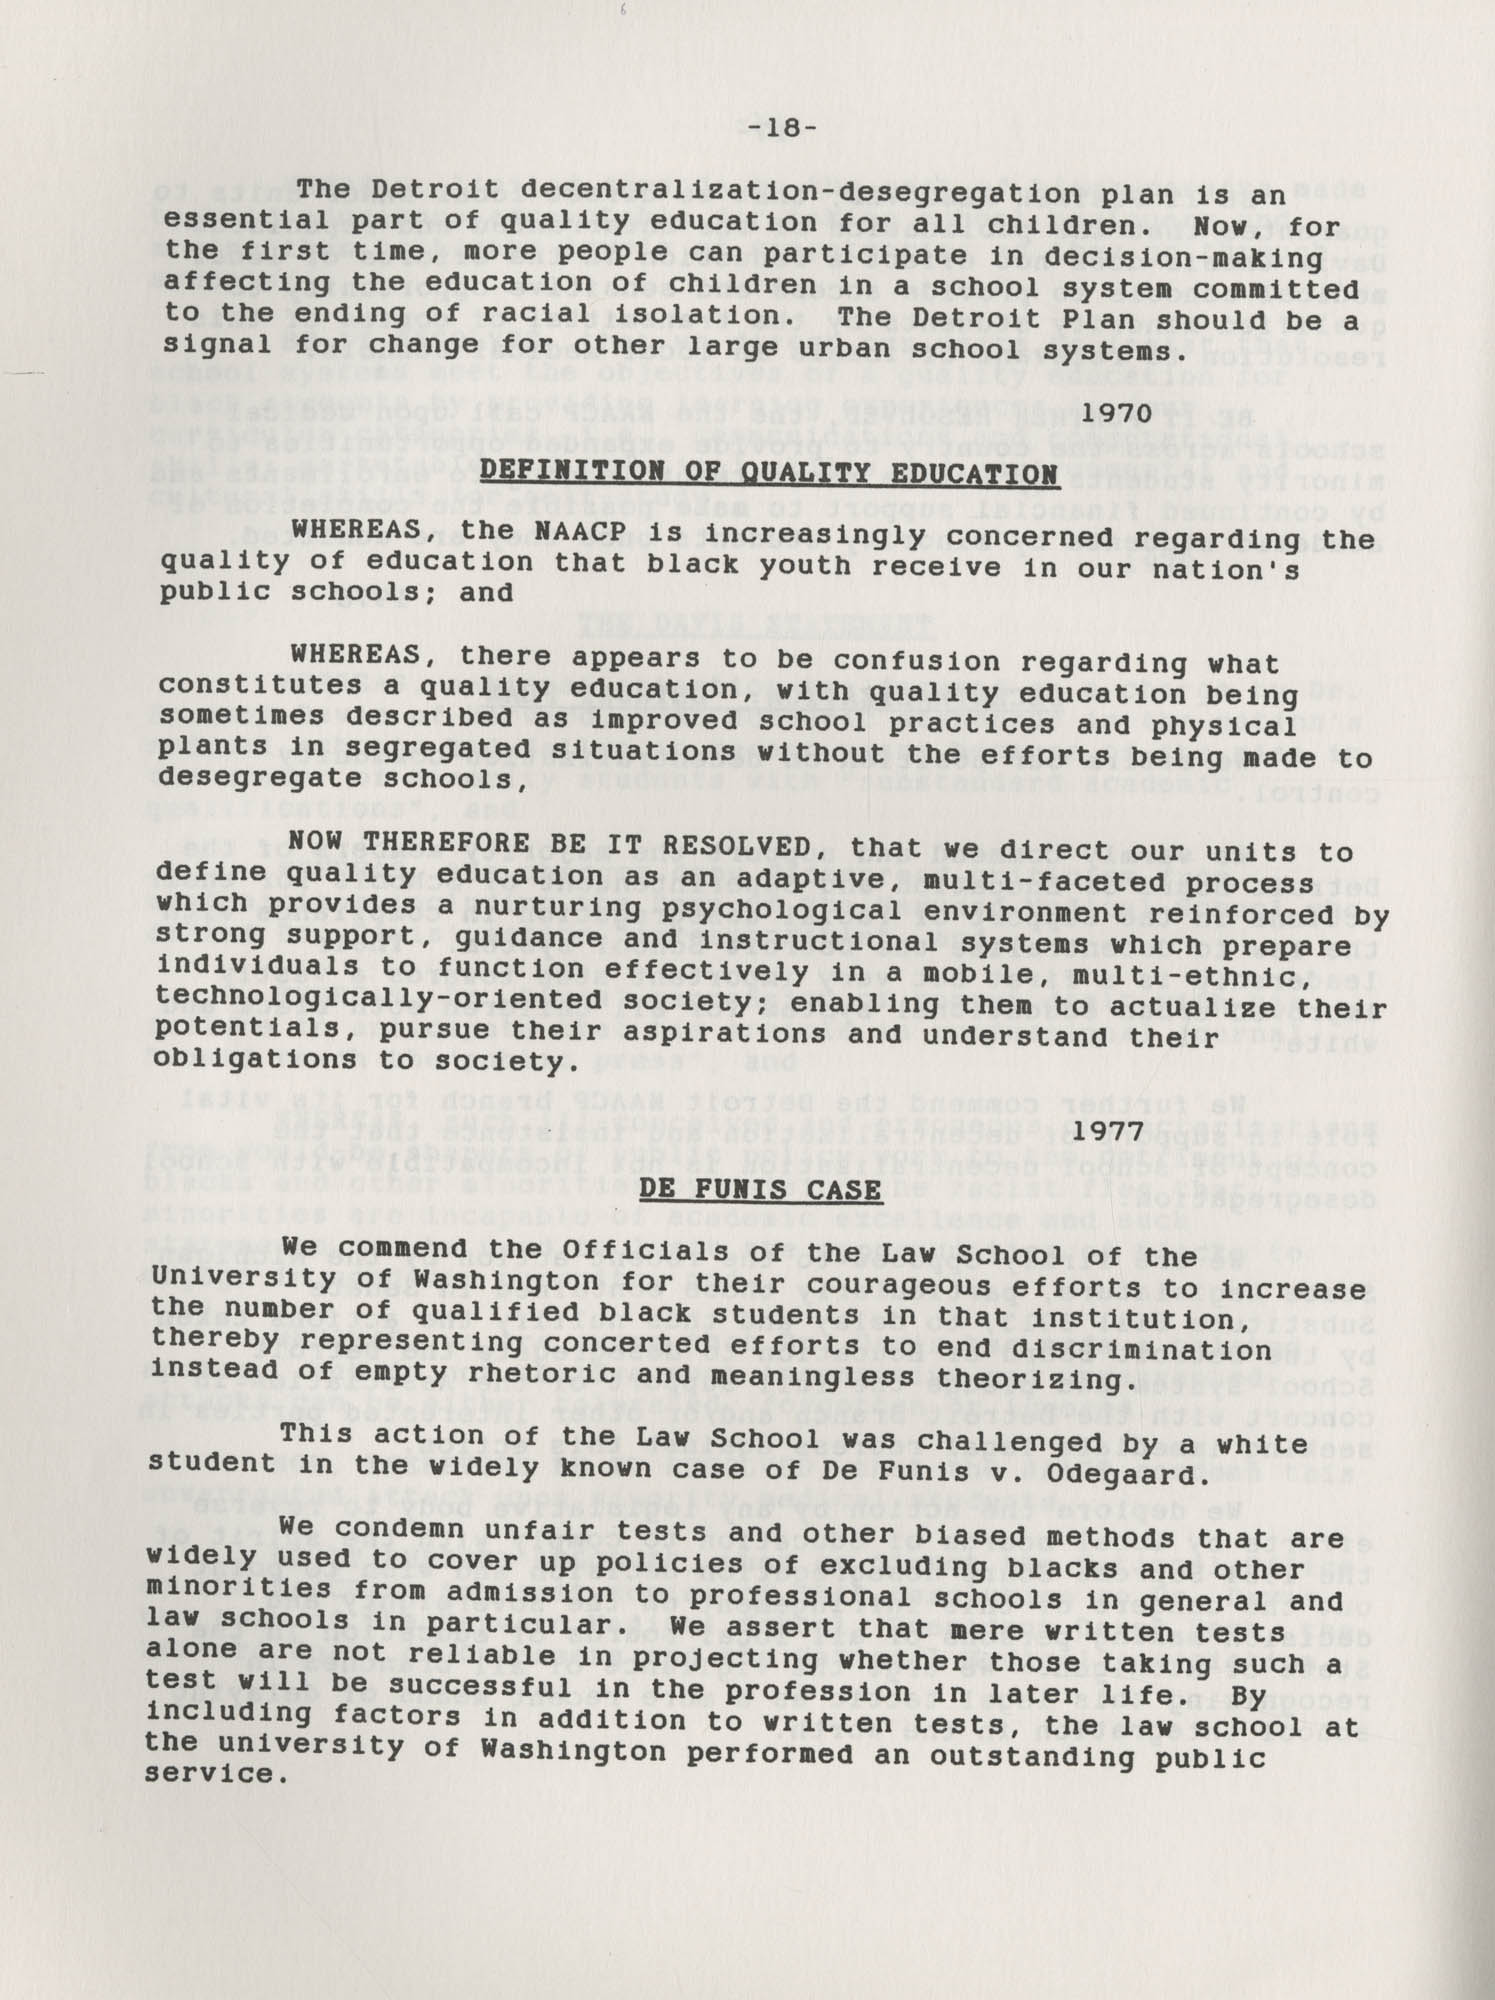 NAACP Resolutions on Education, 1970-1989, Index to Education Resolutions, Page 18